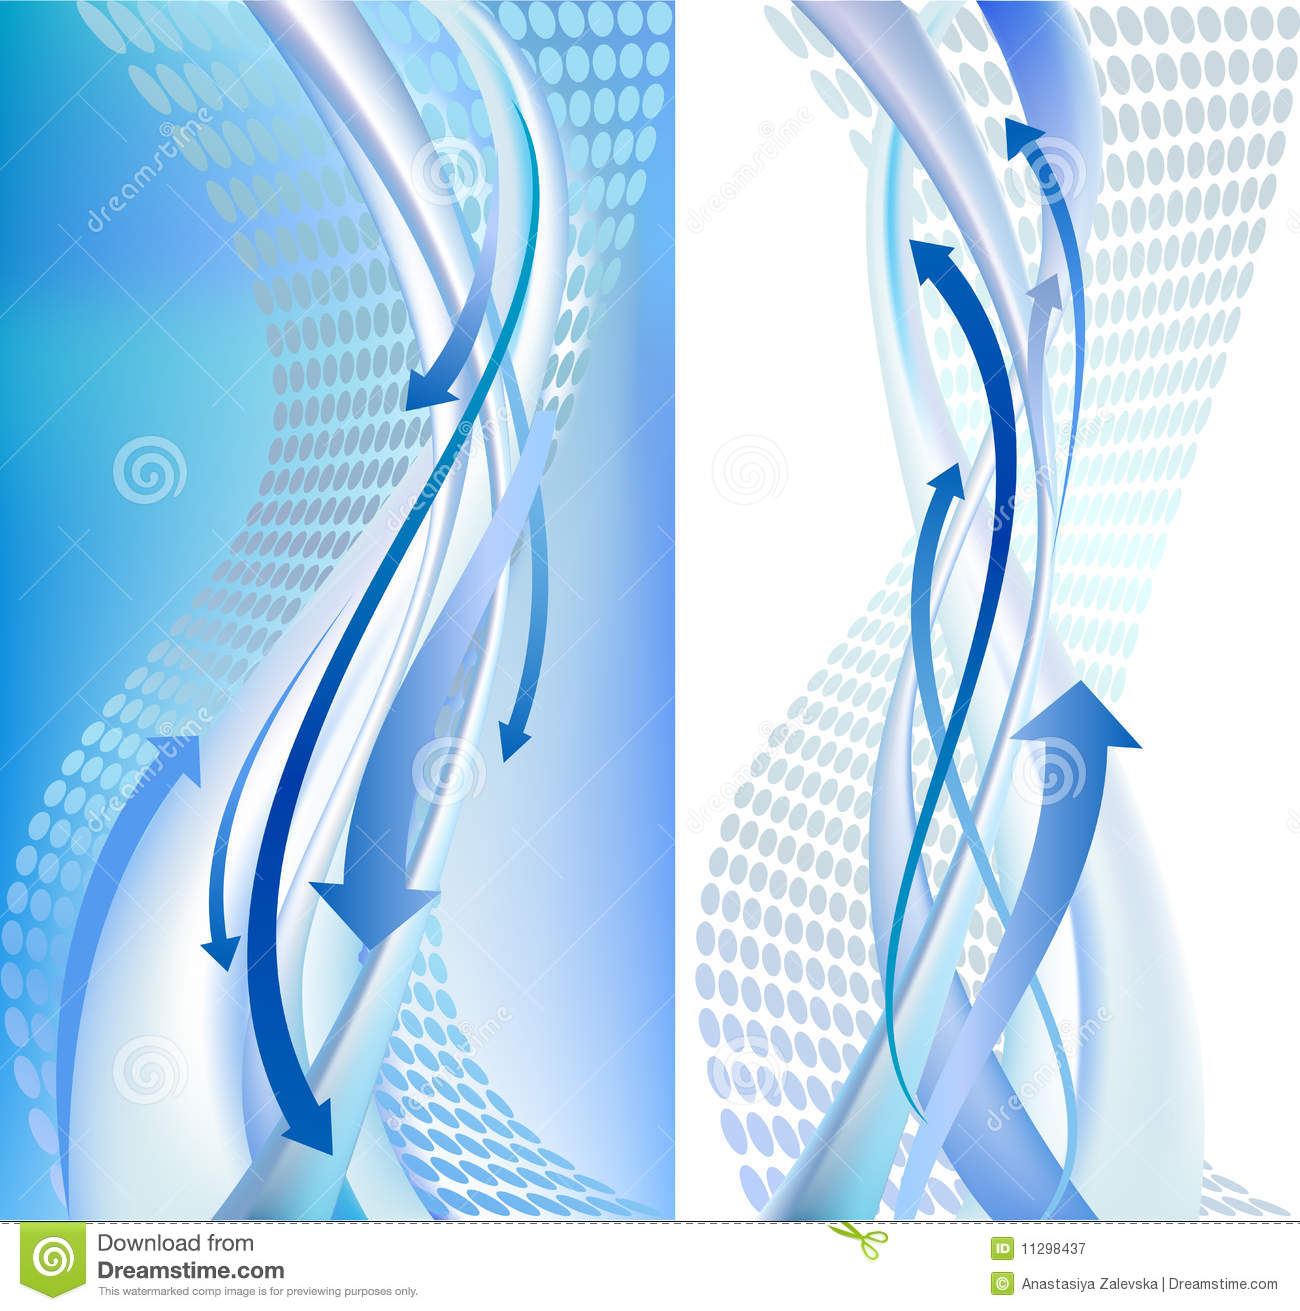 2 Abstract backgrounds with arrows